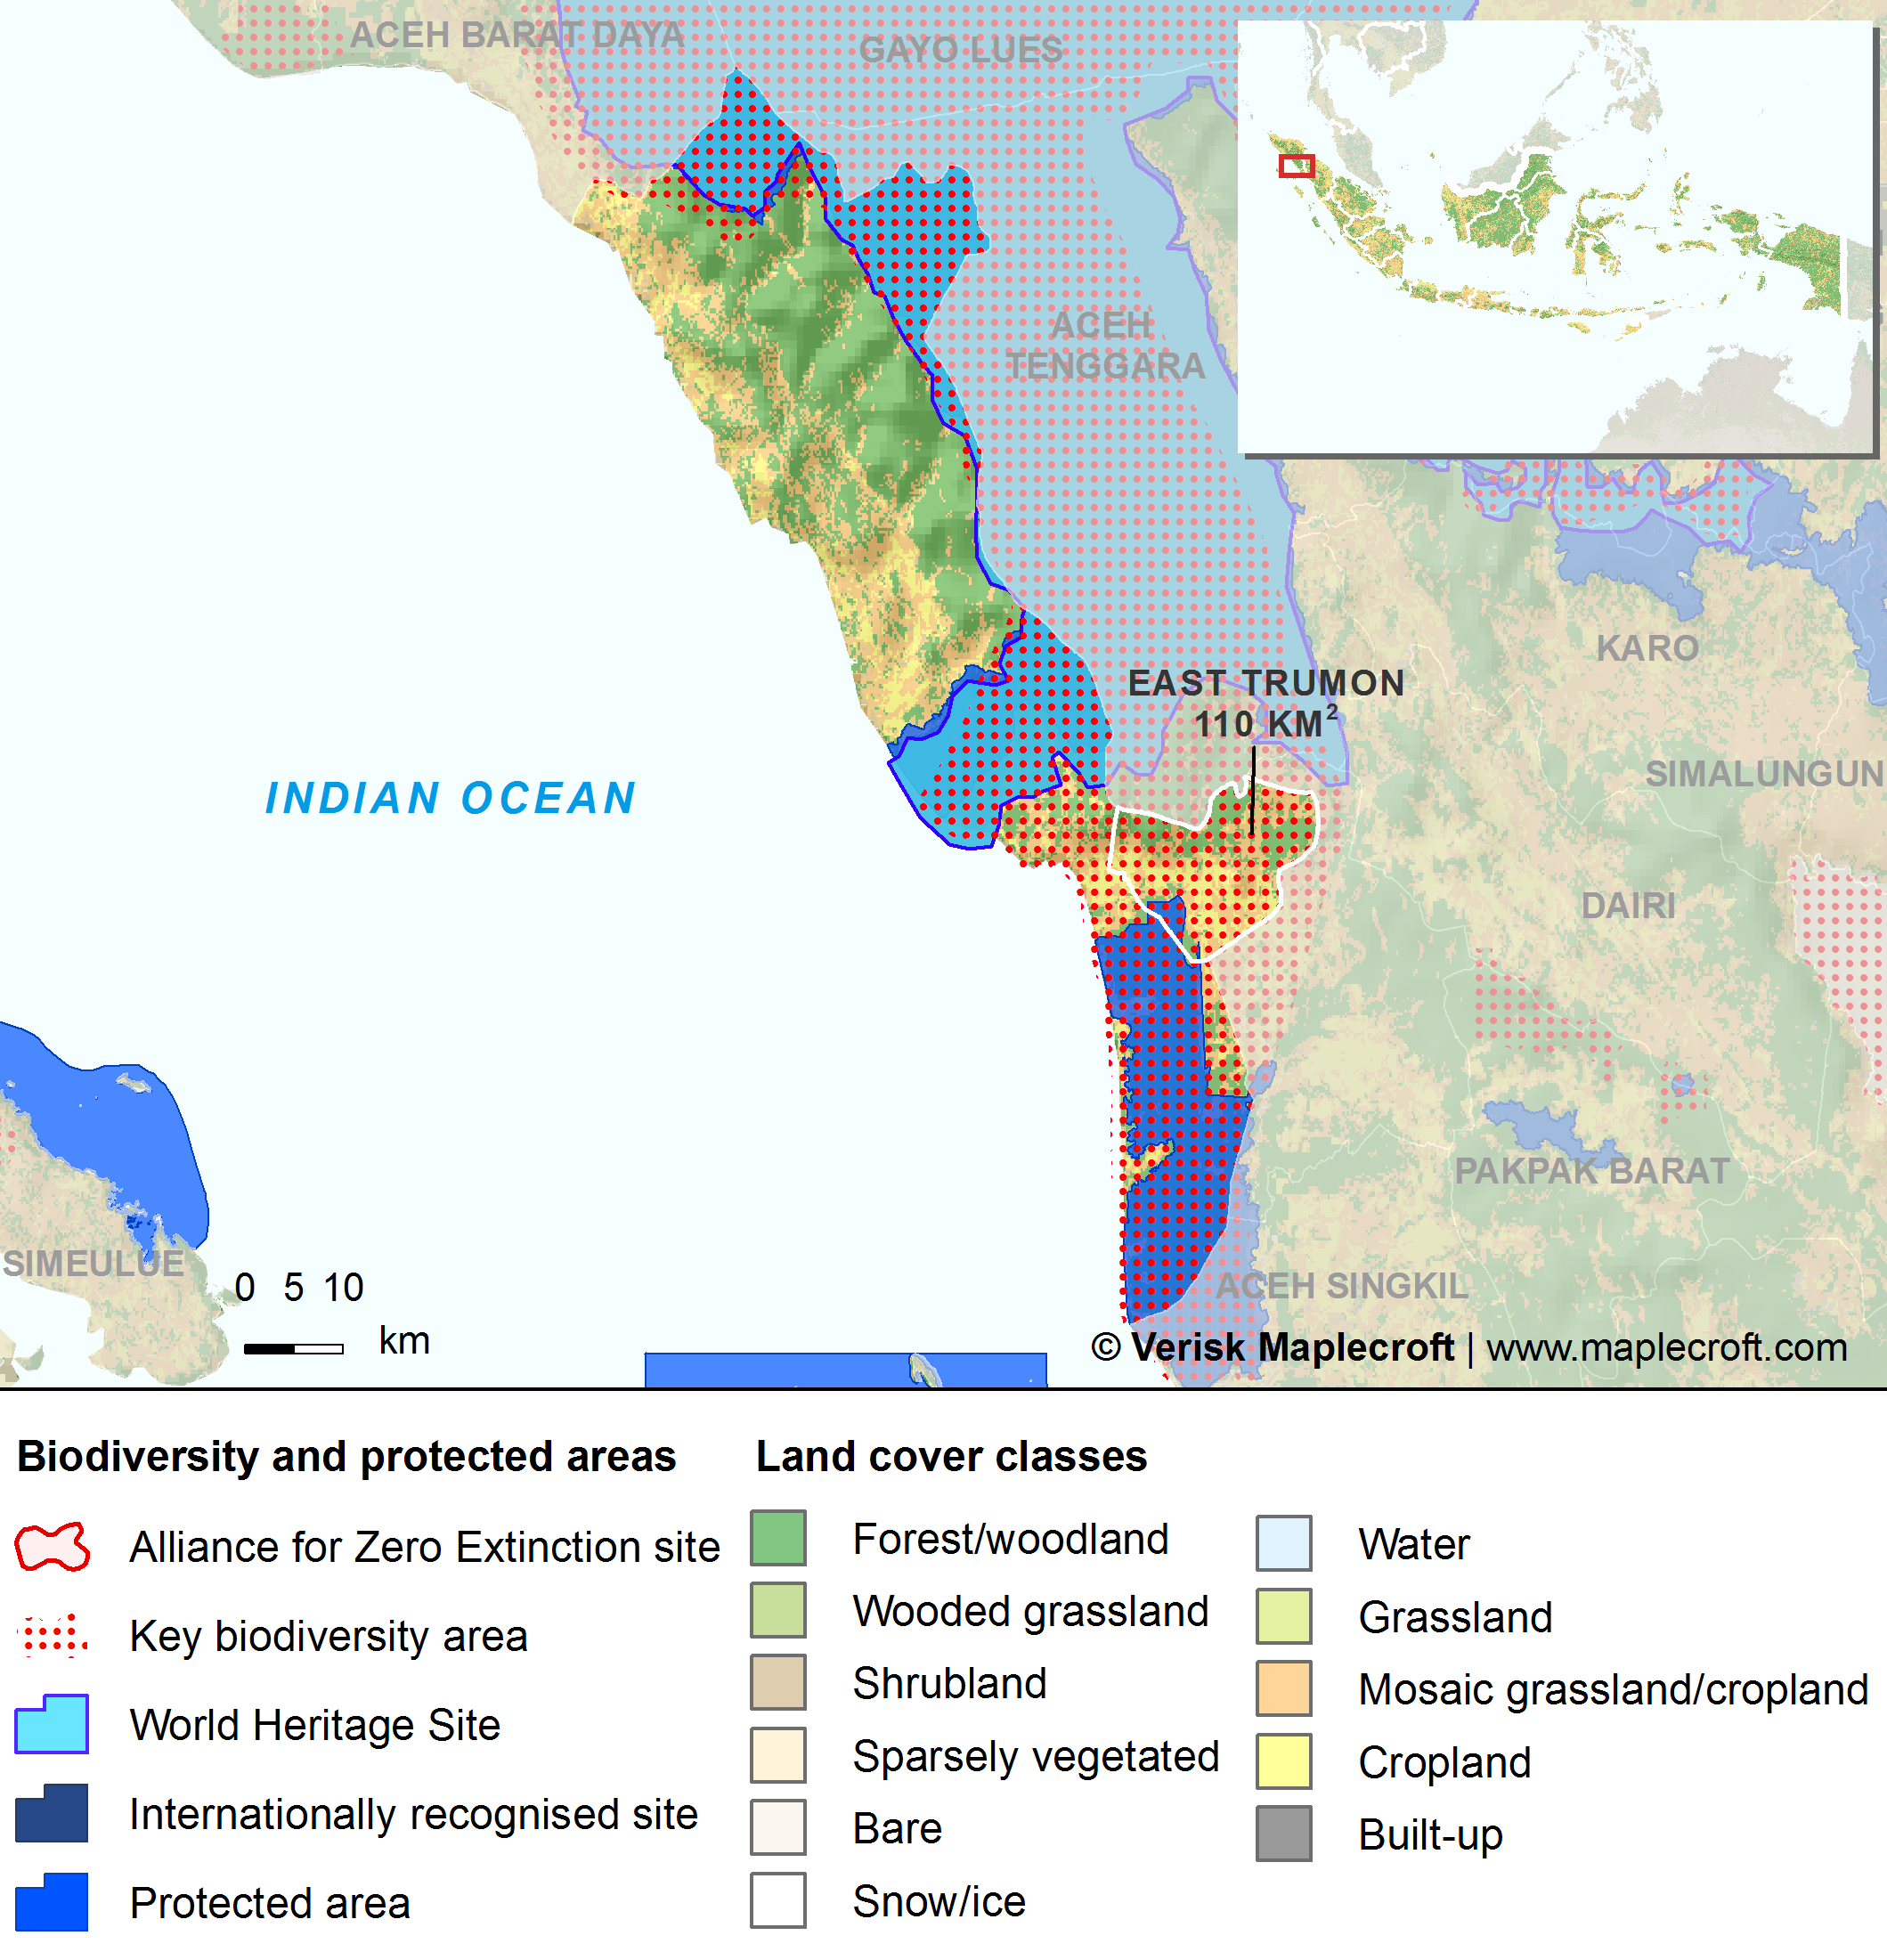 South Aceh Regency - Key biodiversity areas in South Aceh